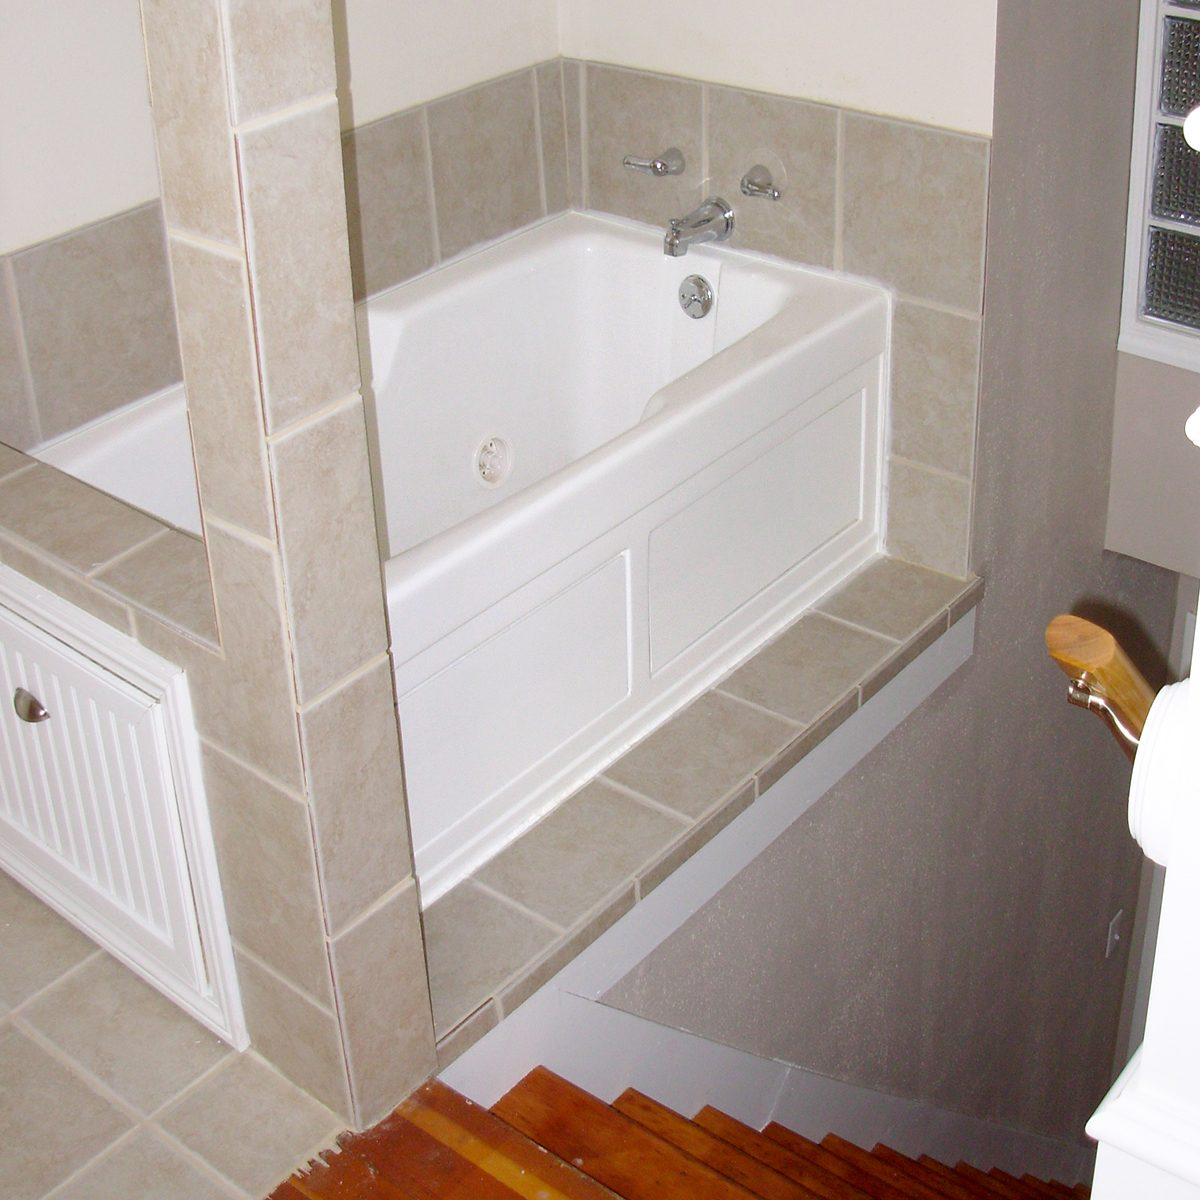 Poorly designed bathtub above stairs   Construction Pro Tips